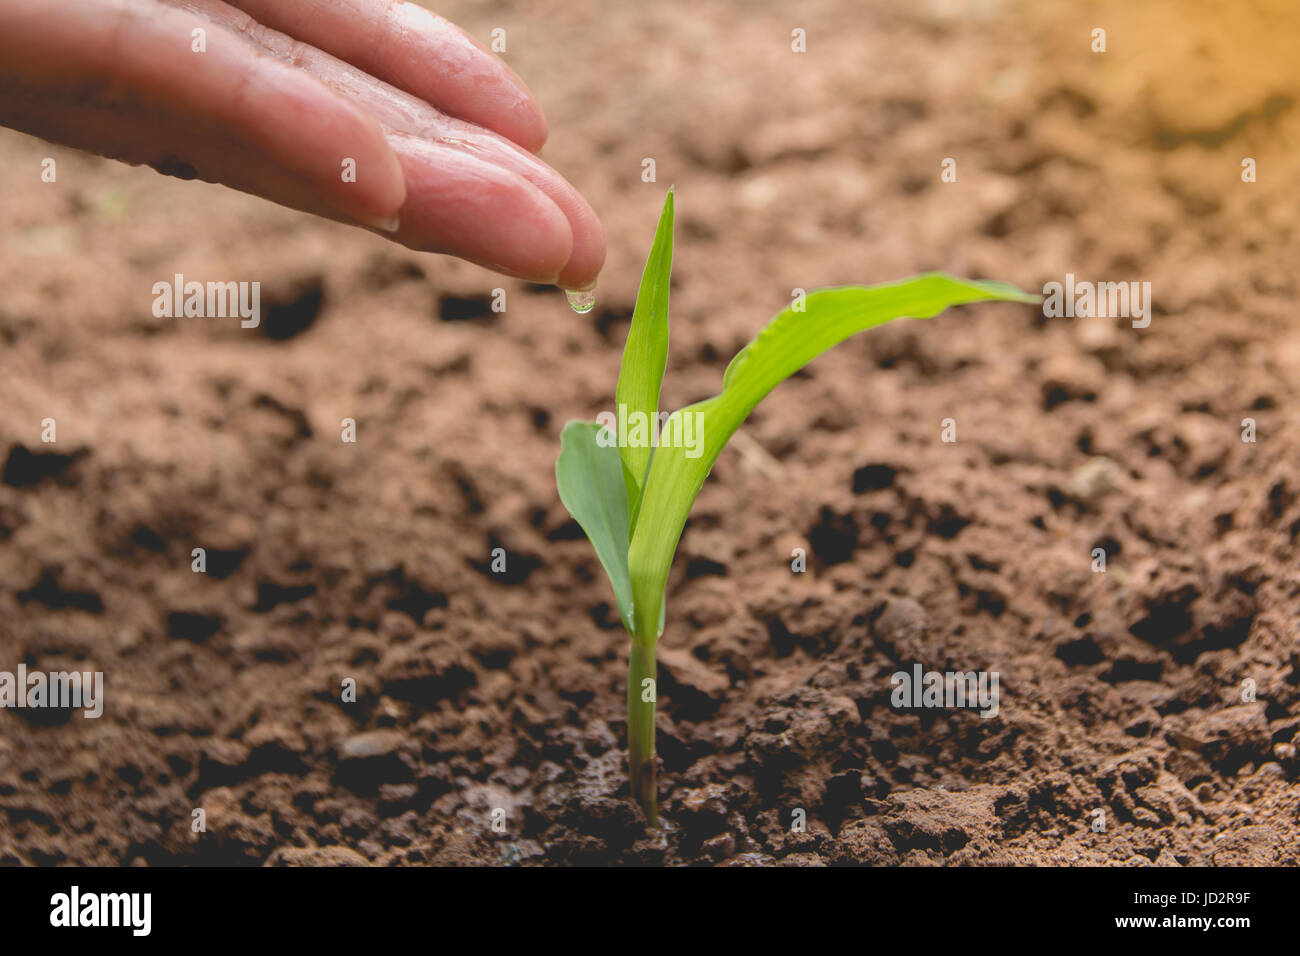 Seedling concept by human hand watering young tree over green background - Stock Image